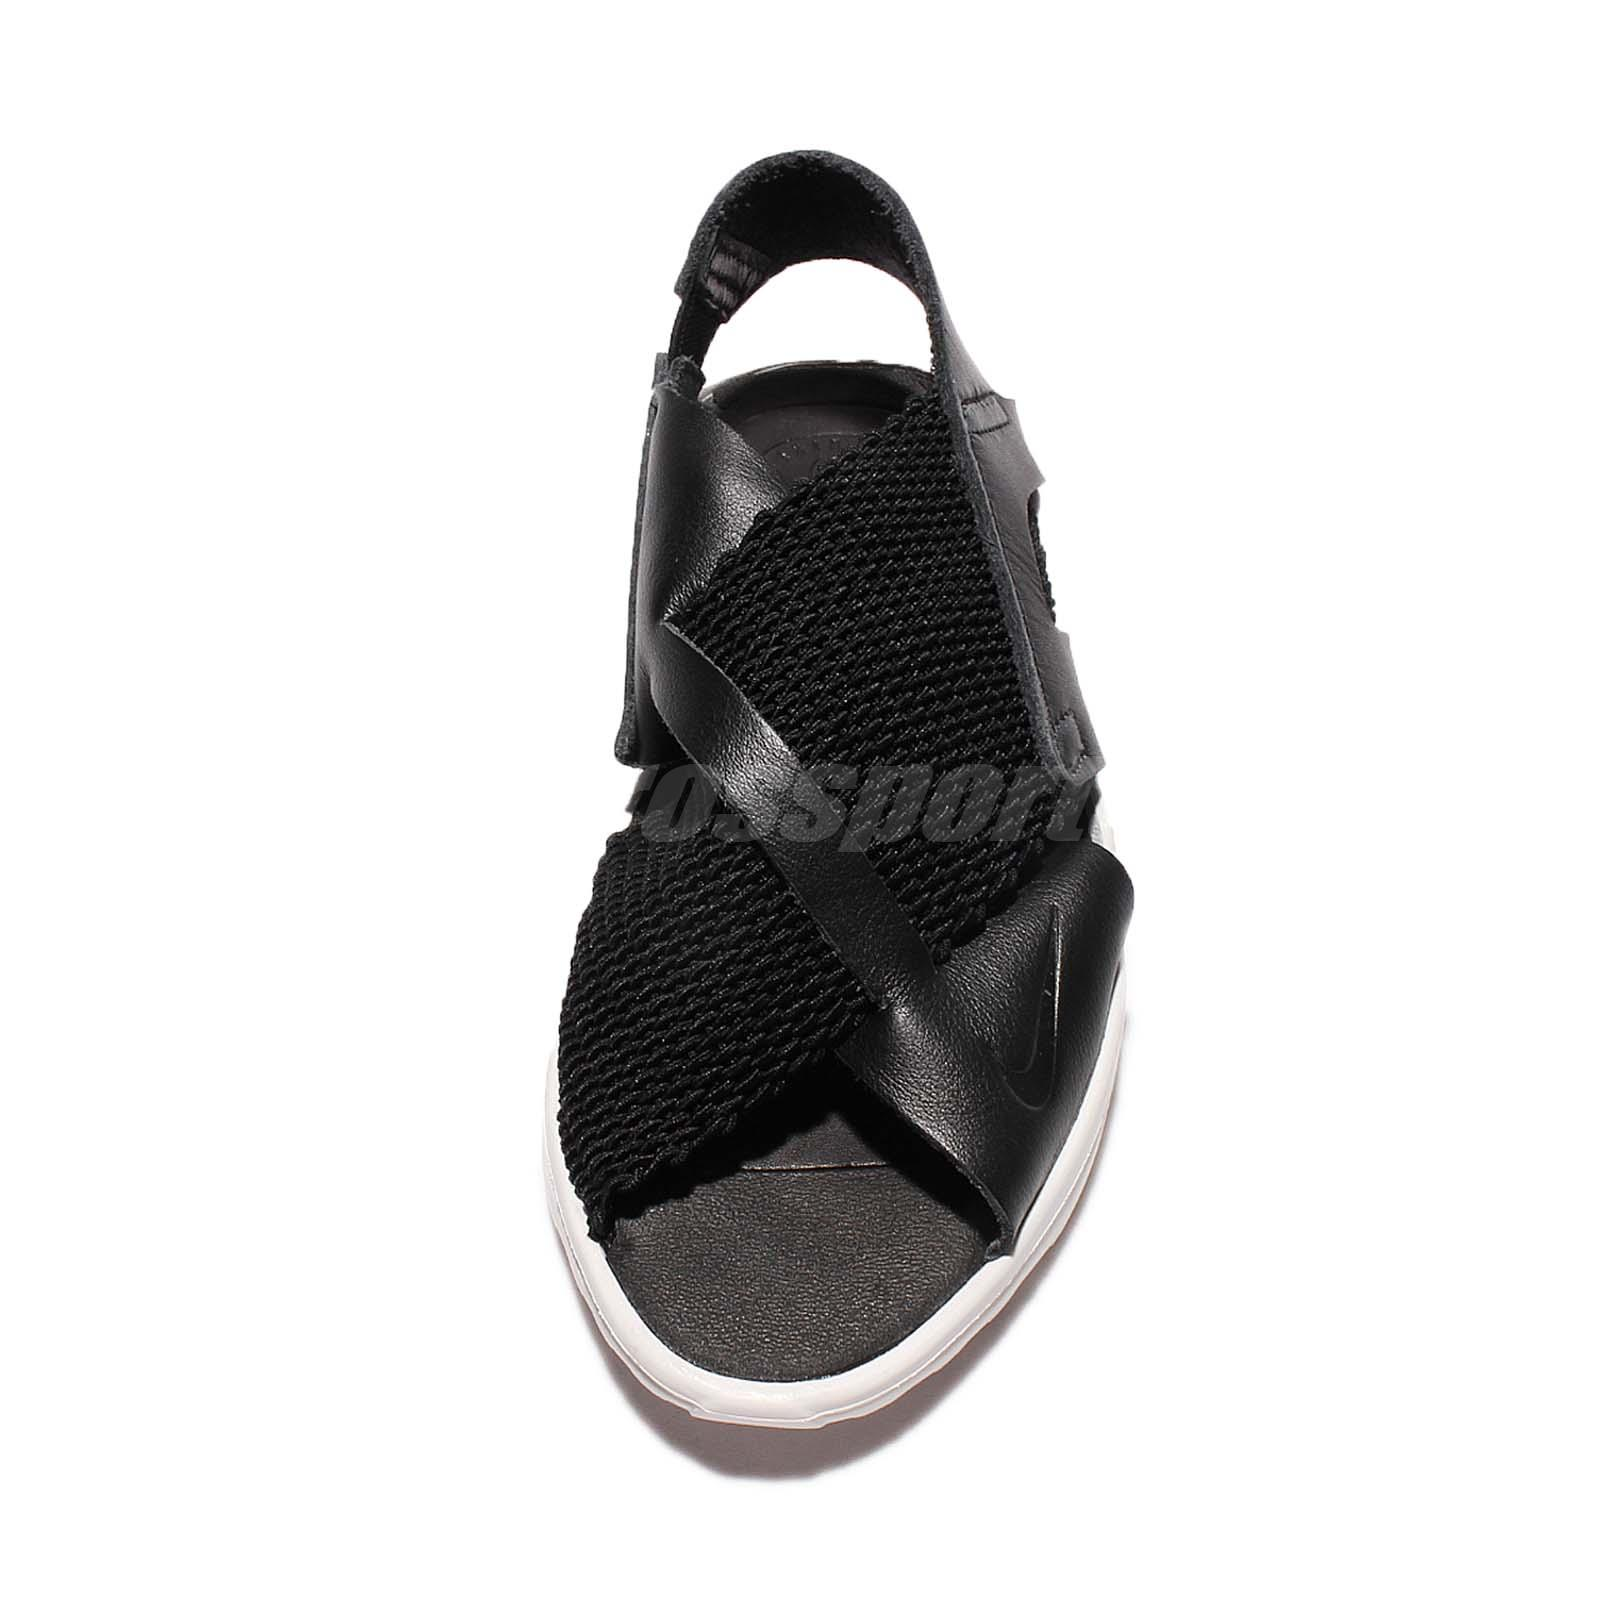 198641597812 Wmns Nike Air Huarache Ultra Black White Women Slip-On Sandals Shoes ...